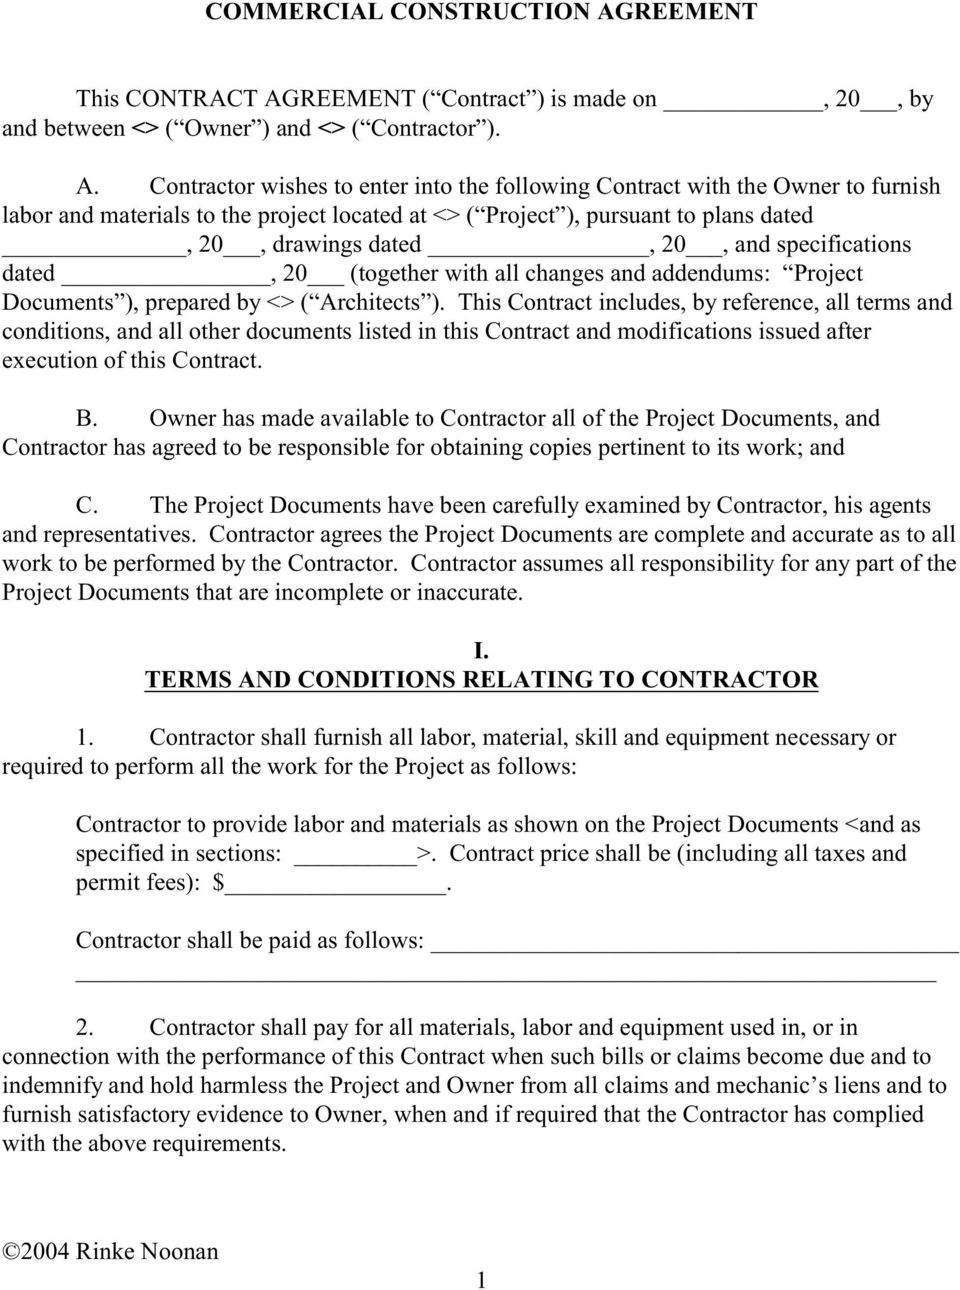 Commercial Construction Agreement This Contract Agreement